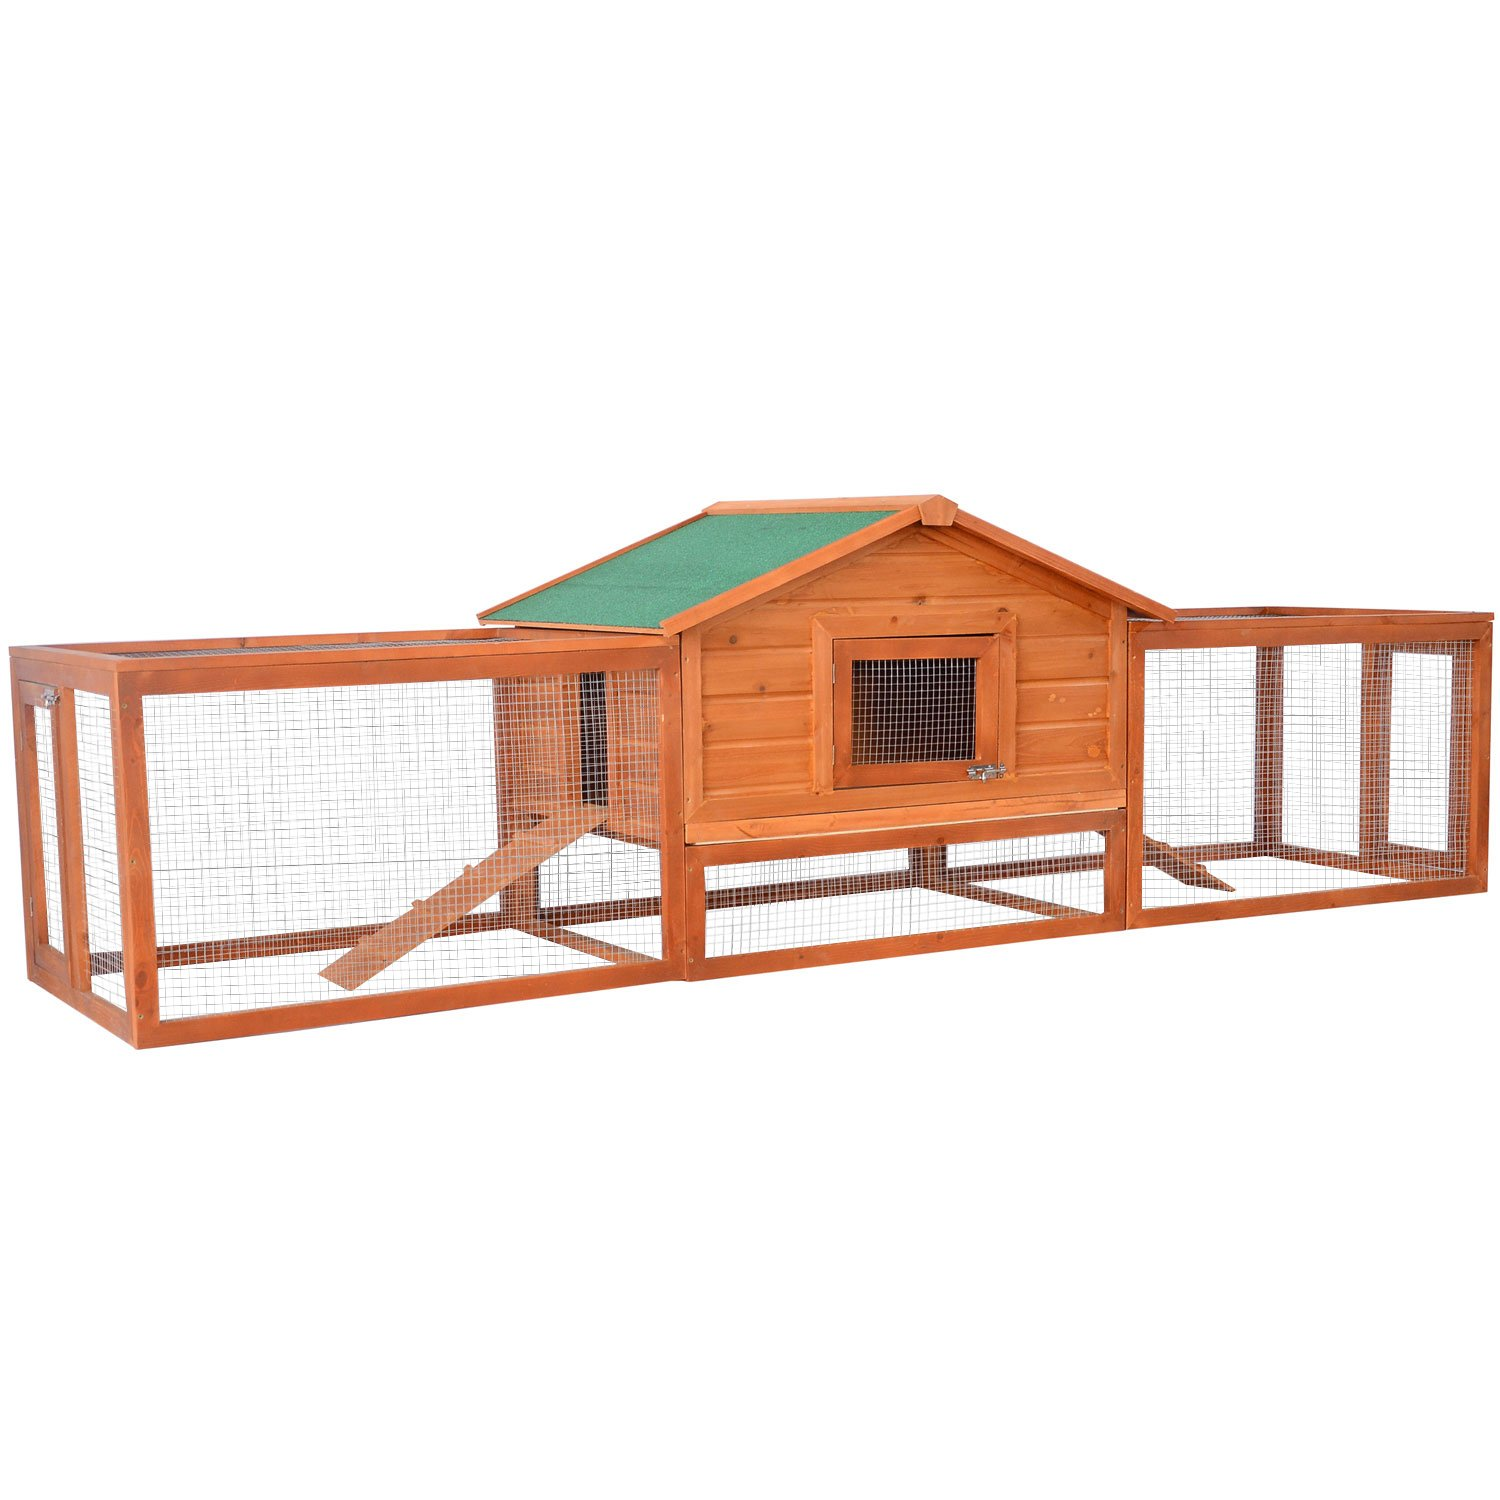 to story exercise hutch space double easily hutches vertical utilize long handmade sale catch mansion narrow for easy pin rabbit floors removable cleaning